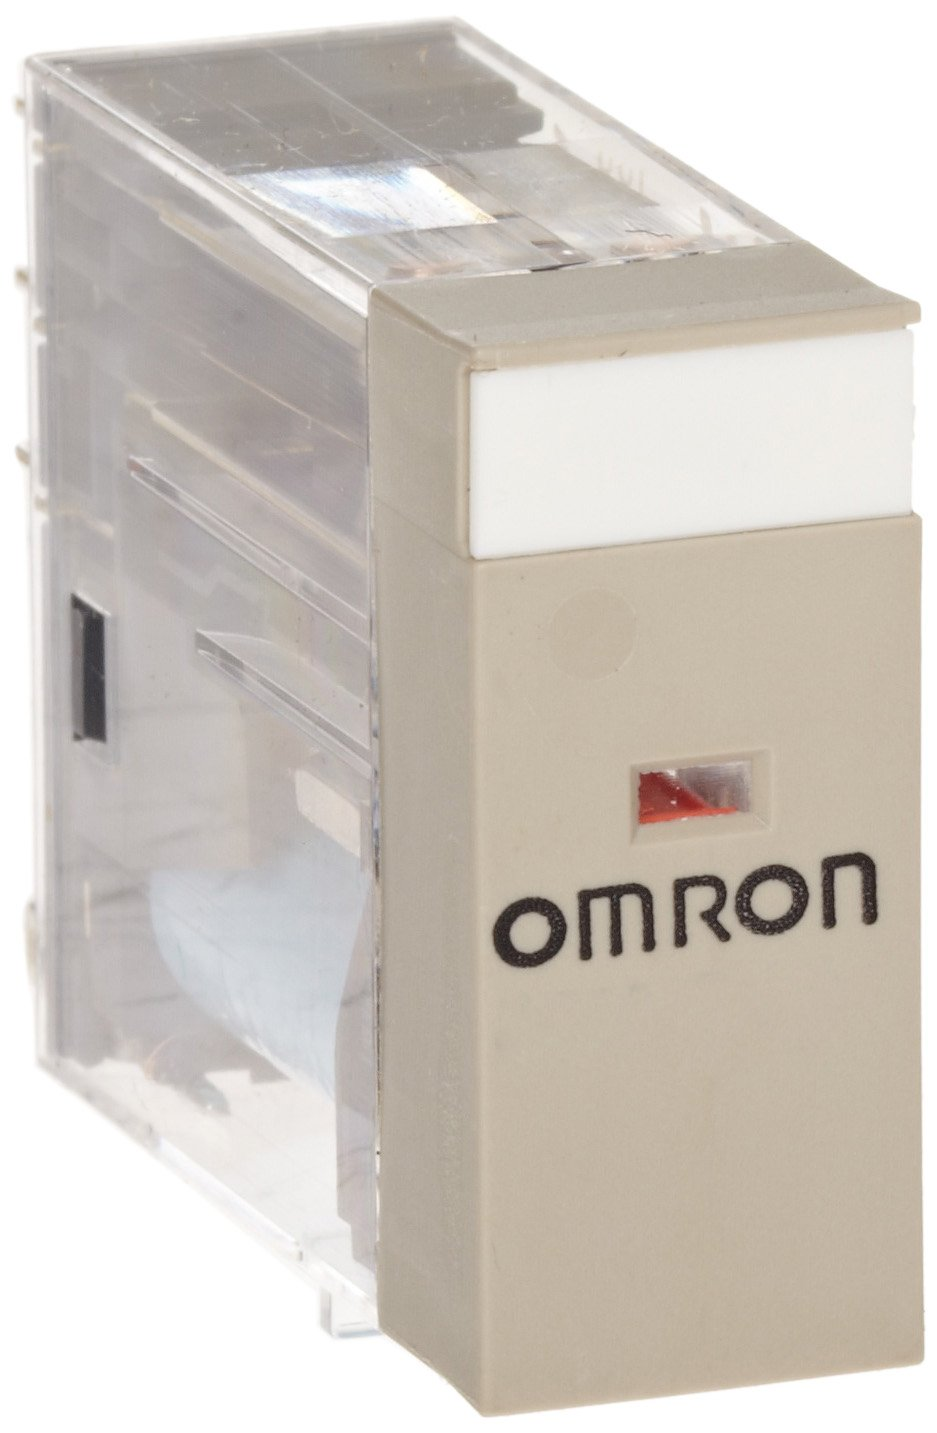 Omron G2R-1-S DC48(S) General Purpose Relay, Plug-In Terminal, Single Pole Double Throw Contacts, 11.4 mA Rated Load Current, 48 VDC Rated Load Voltage